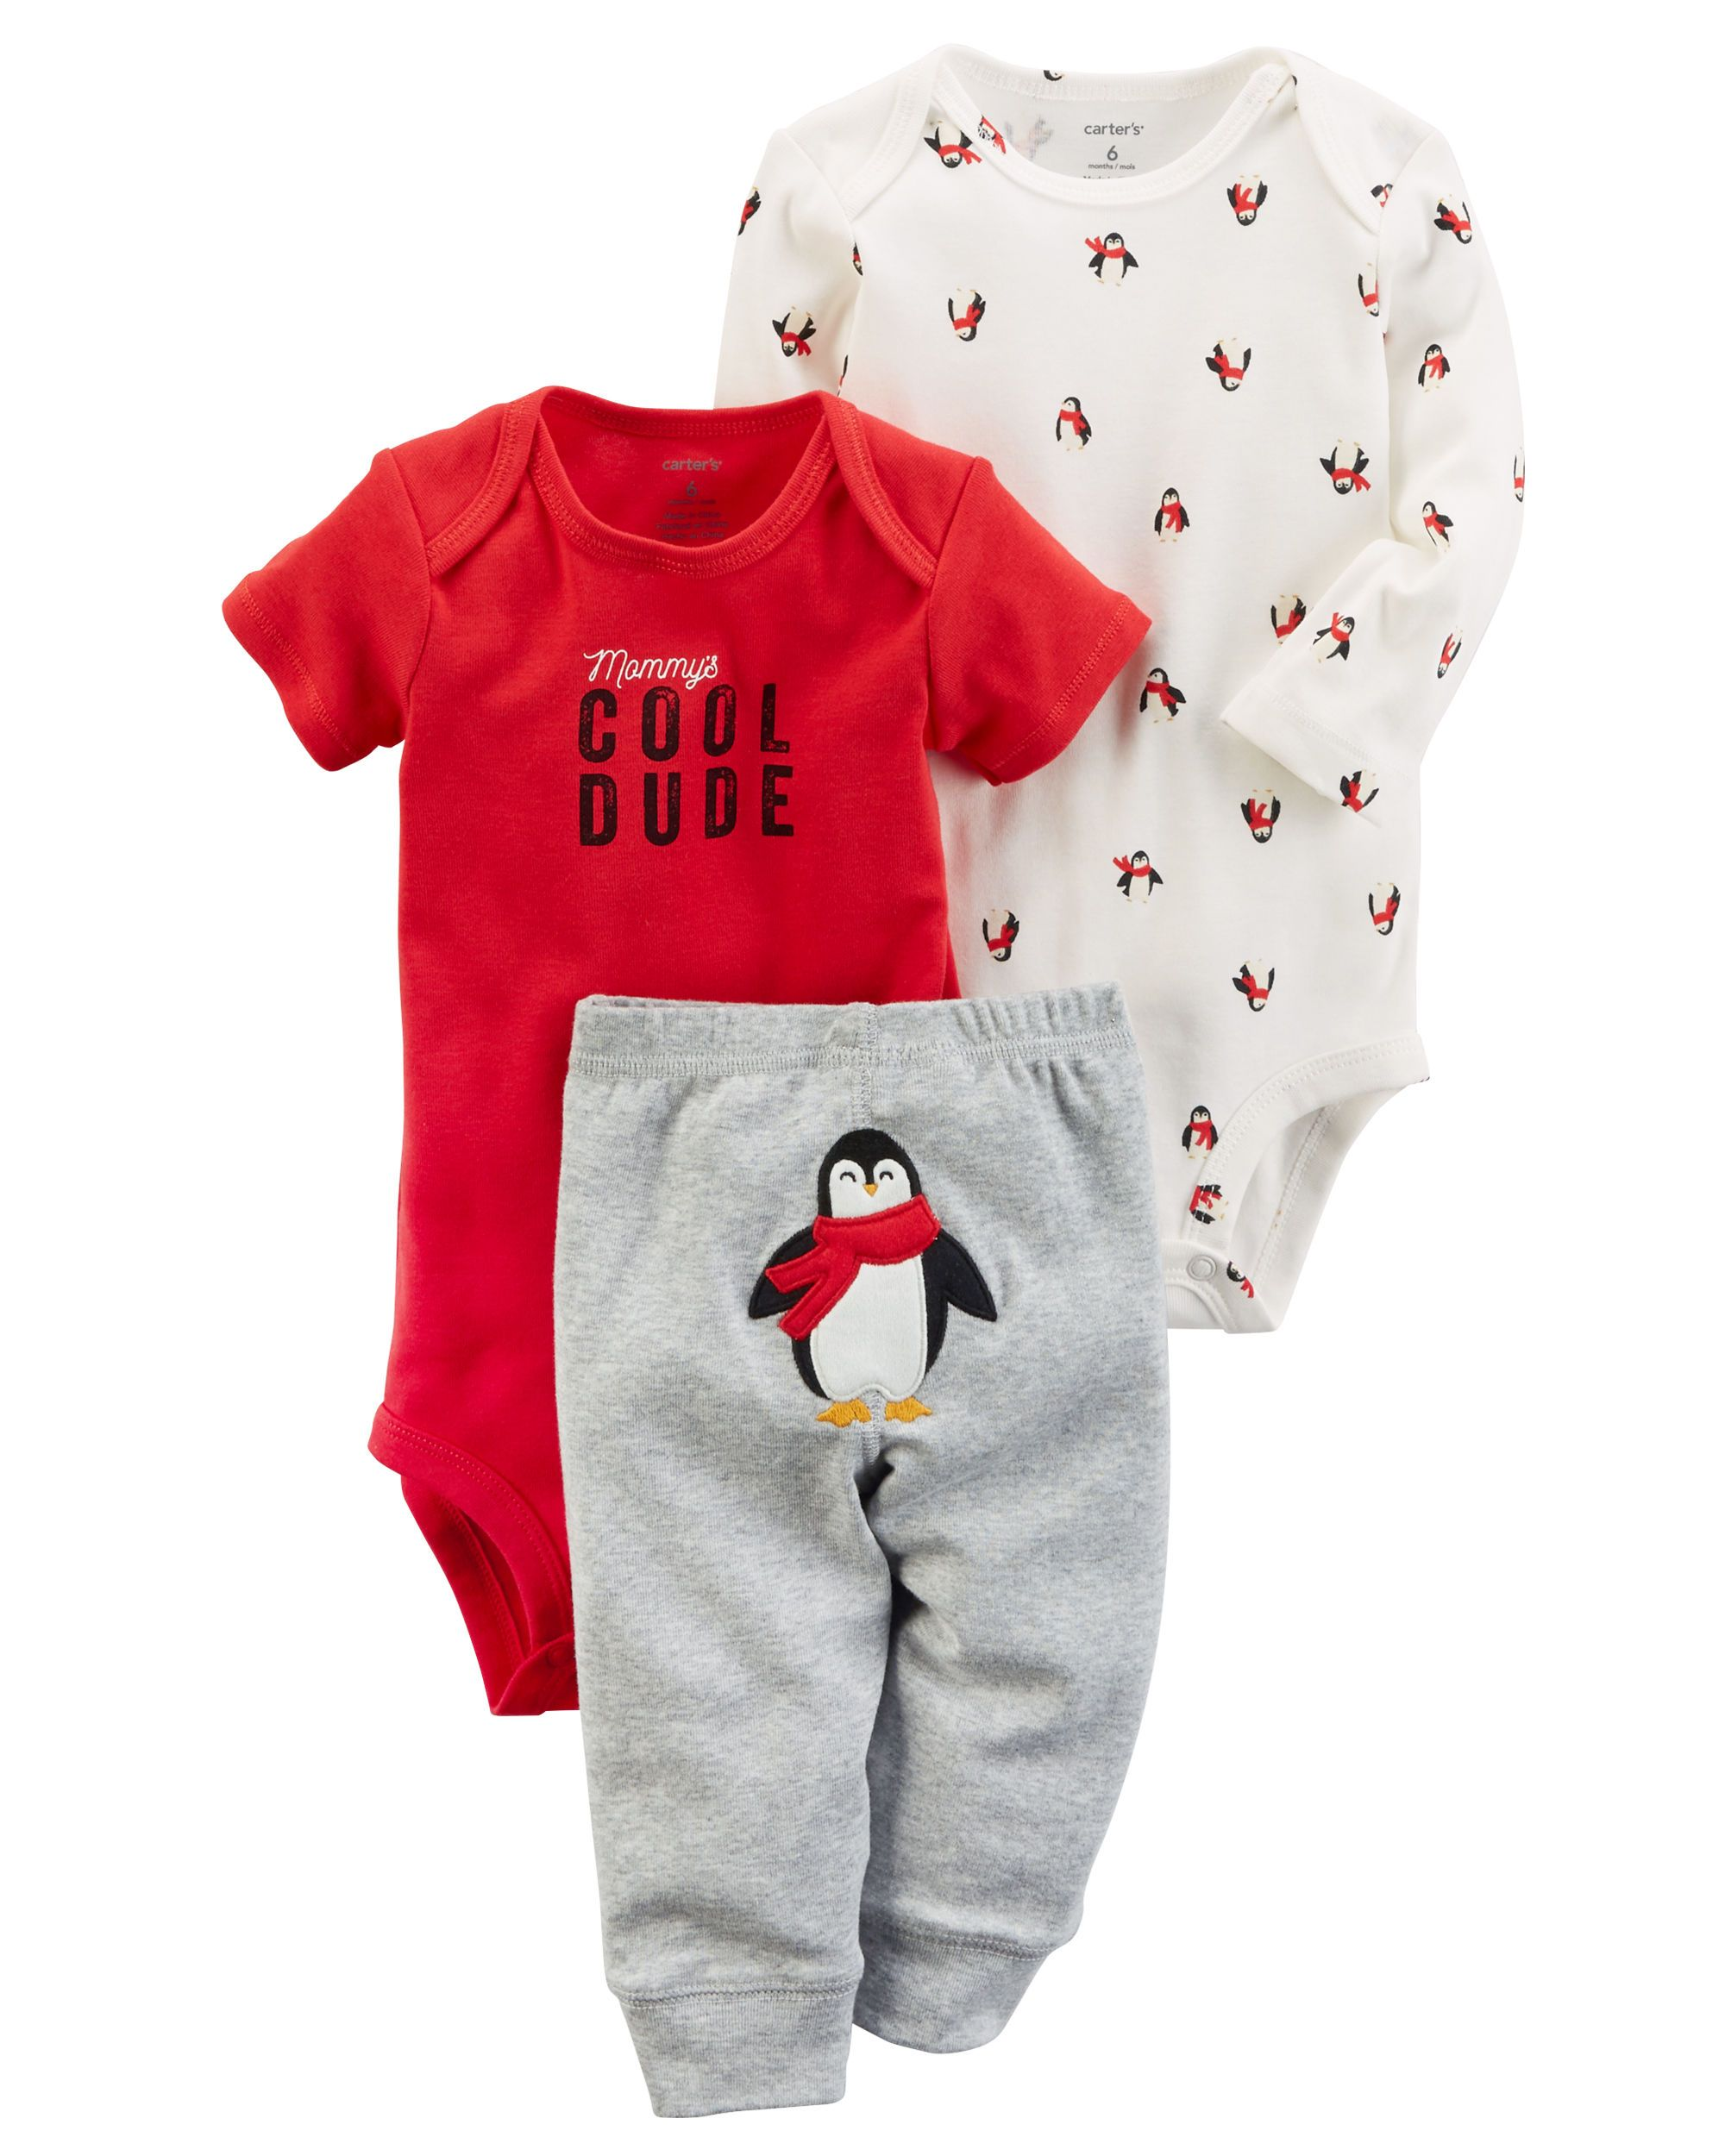 c5ed65d00d70 Featuring a cute little penguin on the bottom and two coordinating bodysuits